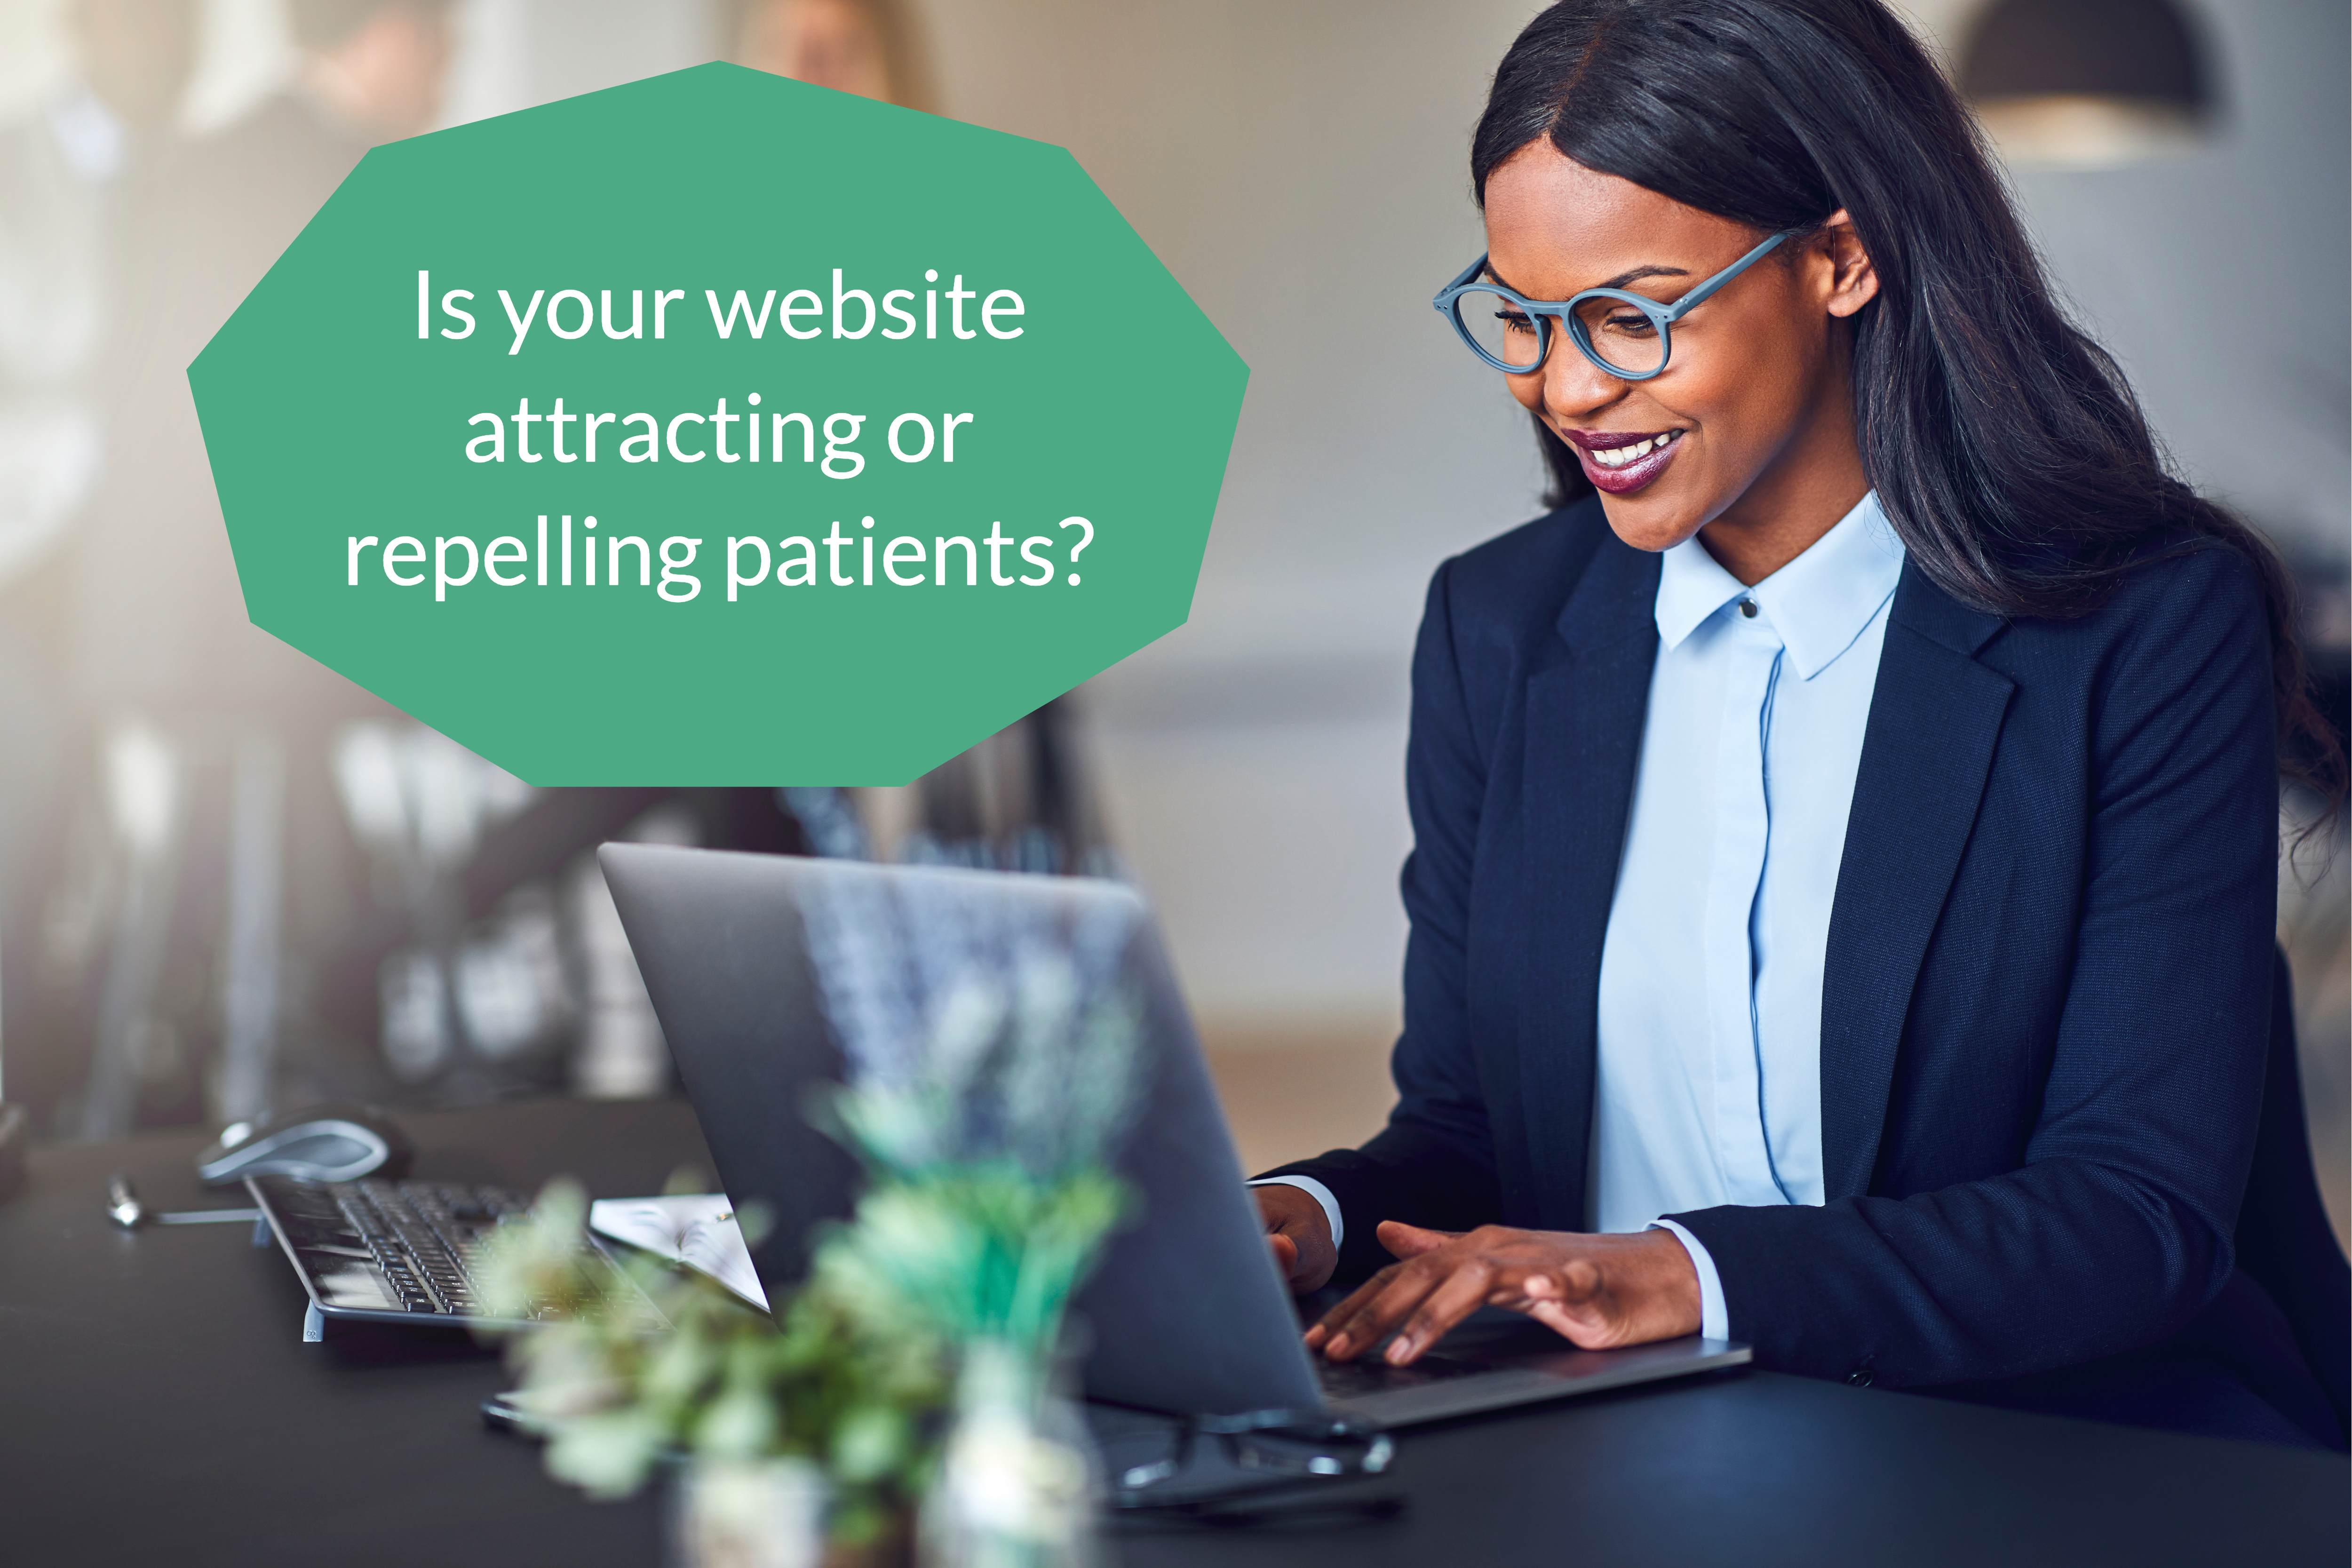 Is your website attracting or repelling patients?